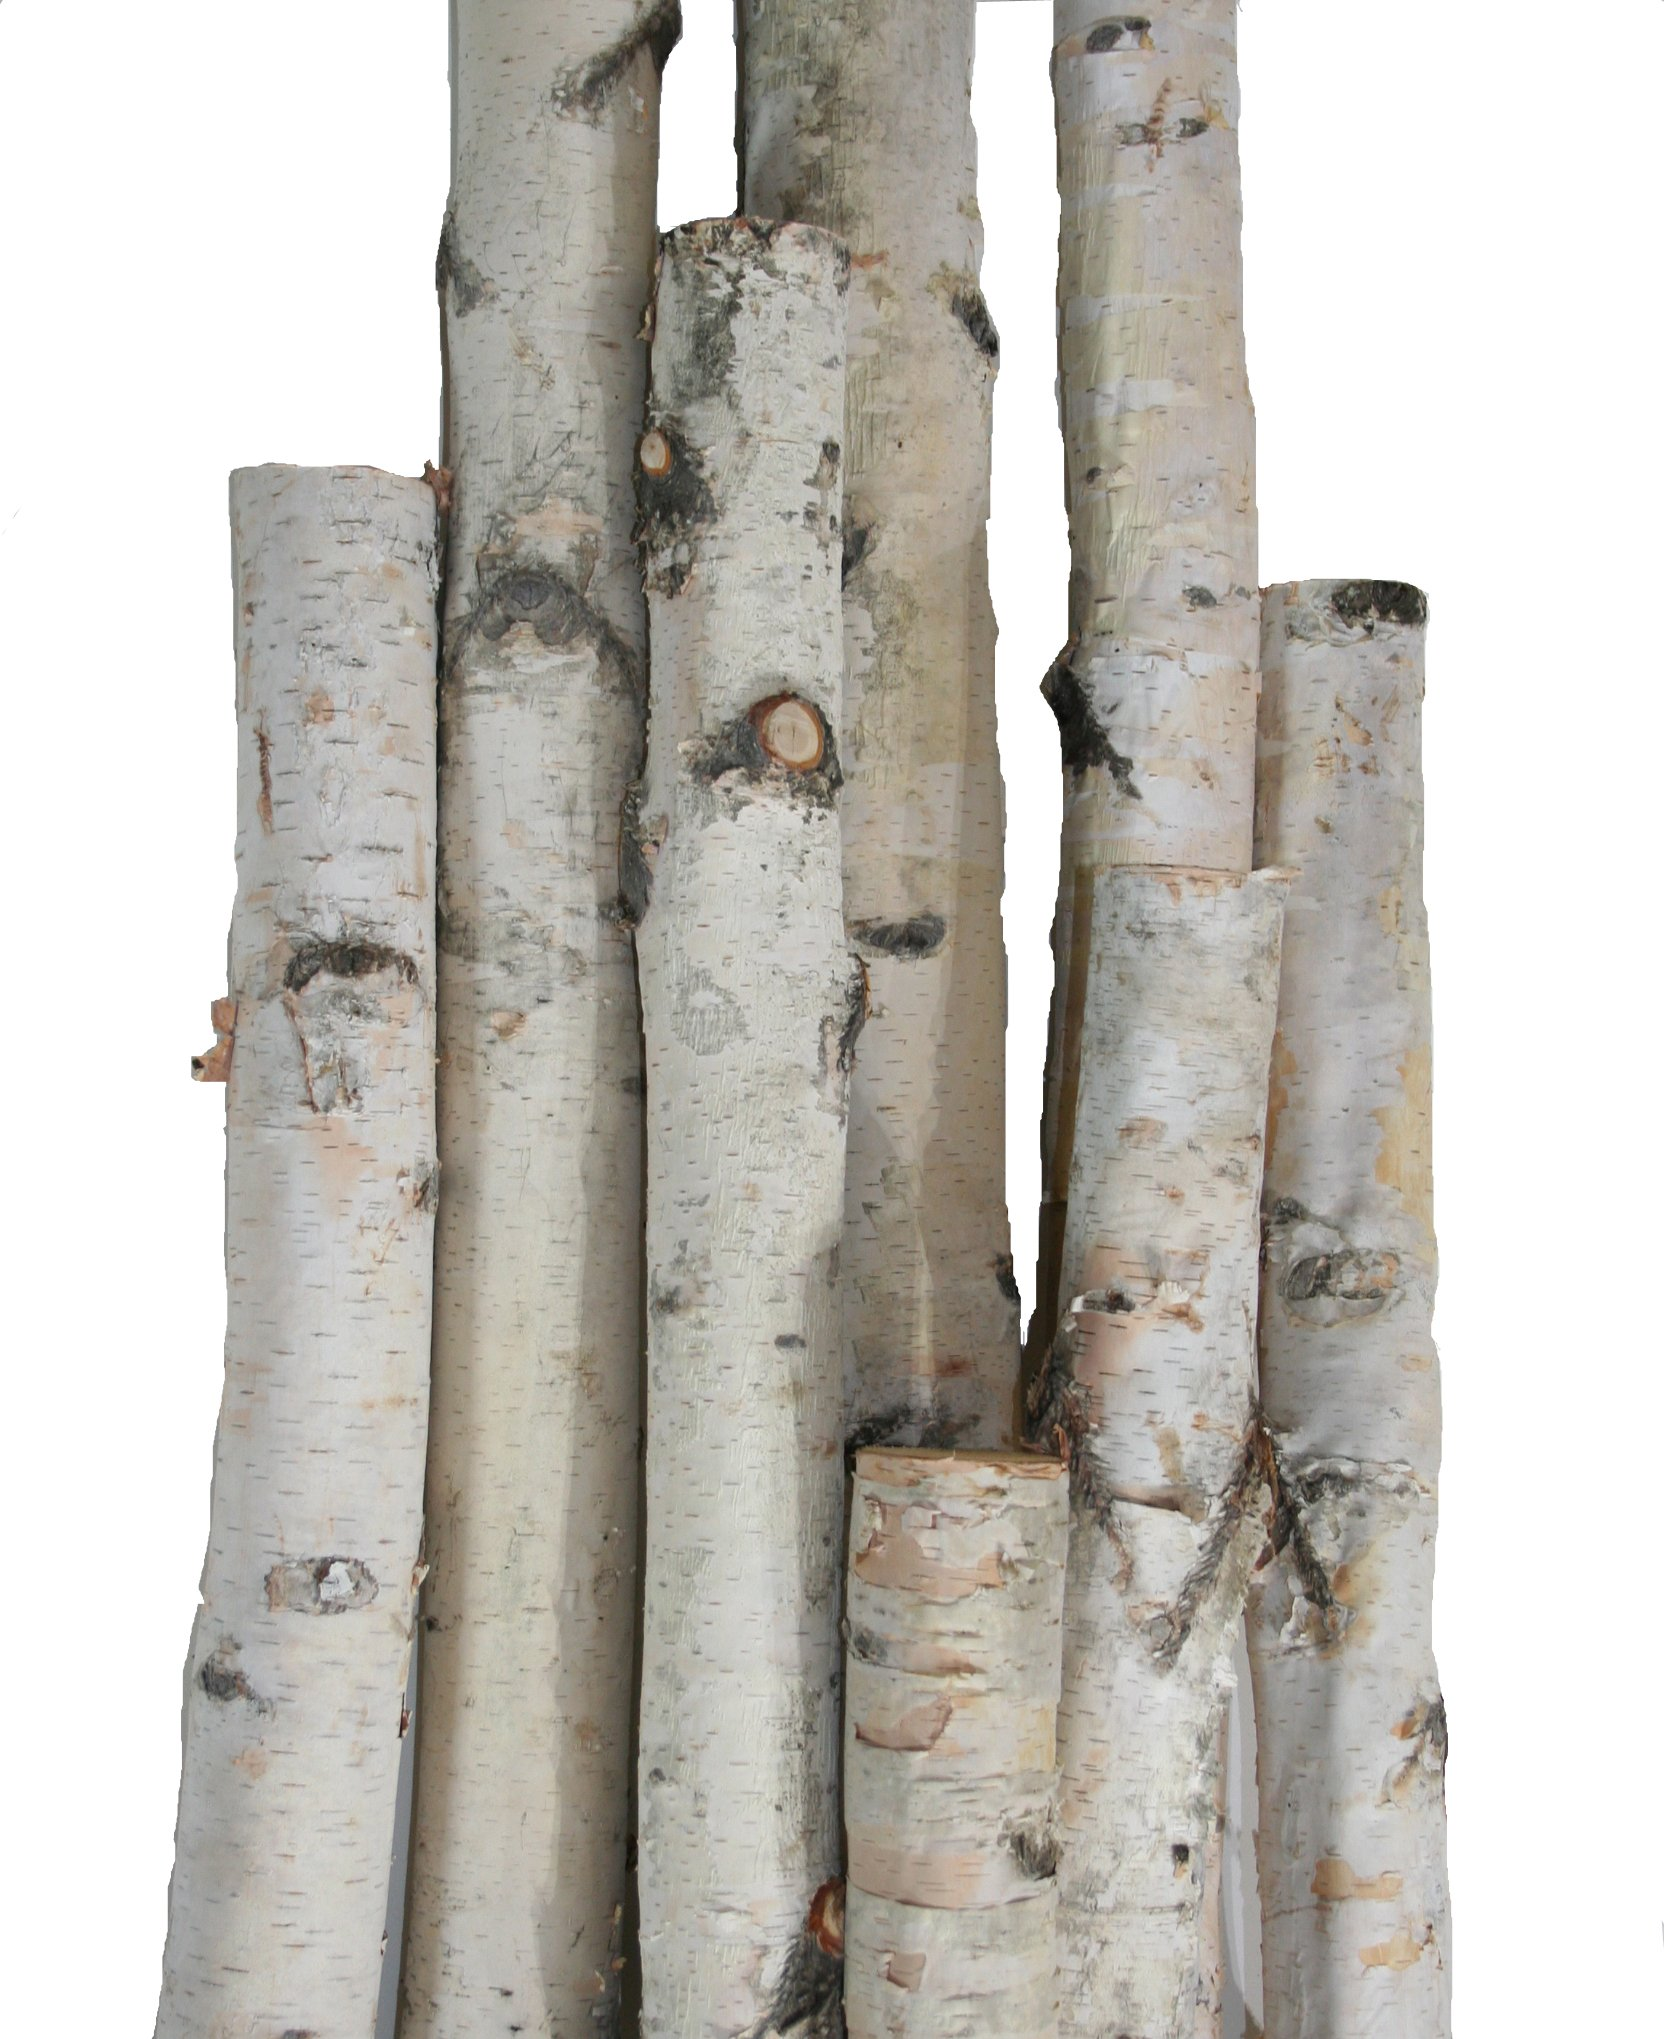 Wilson Enterprises White Birch Pole Pack (X-Large) Set of Birch Poles 1.5-2.5 inch diameter x 6, 7, and 8 feet tall